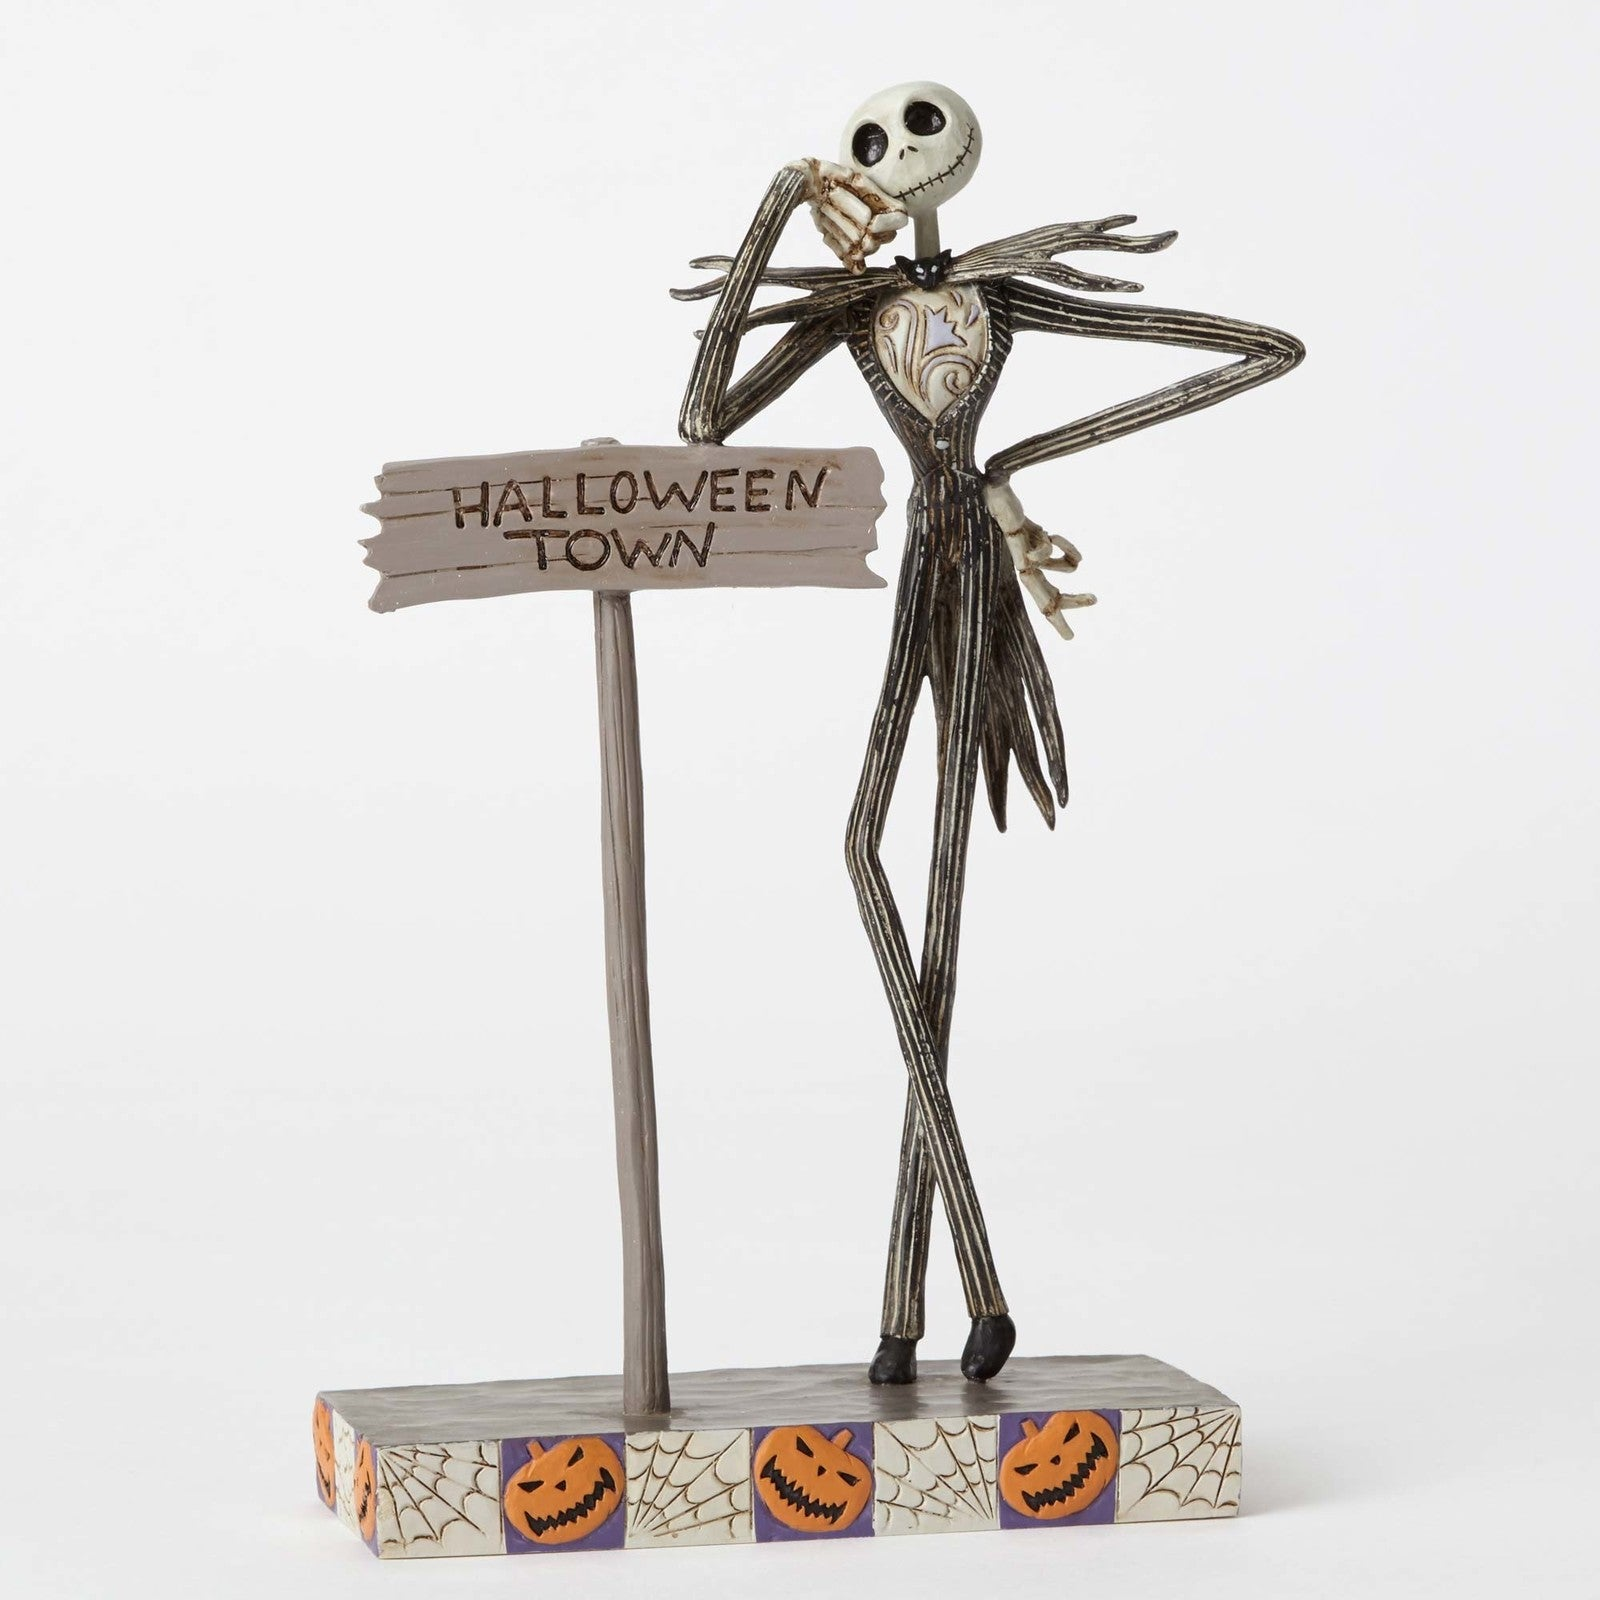 Jack Skellington The Nightmare Before Christmas - Jim Shore Disney Traditions Figurine